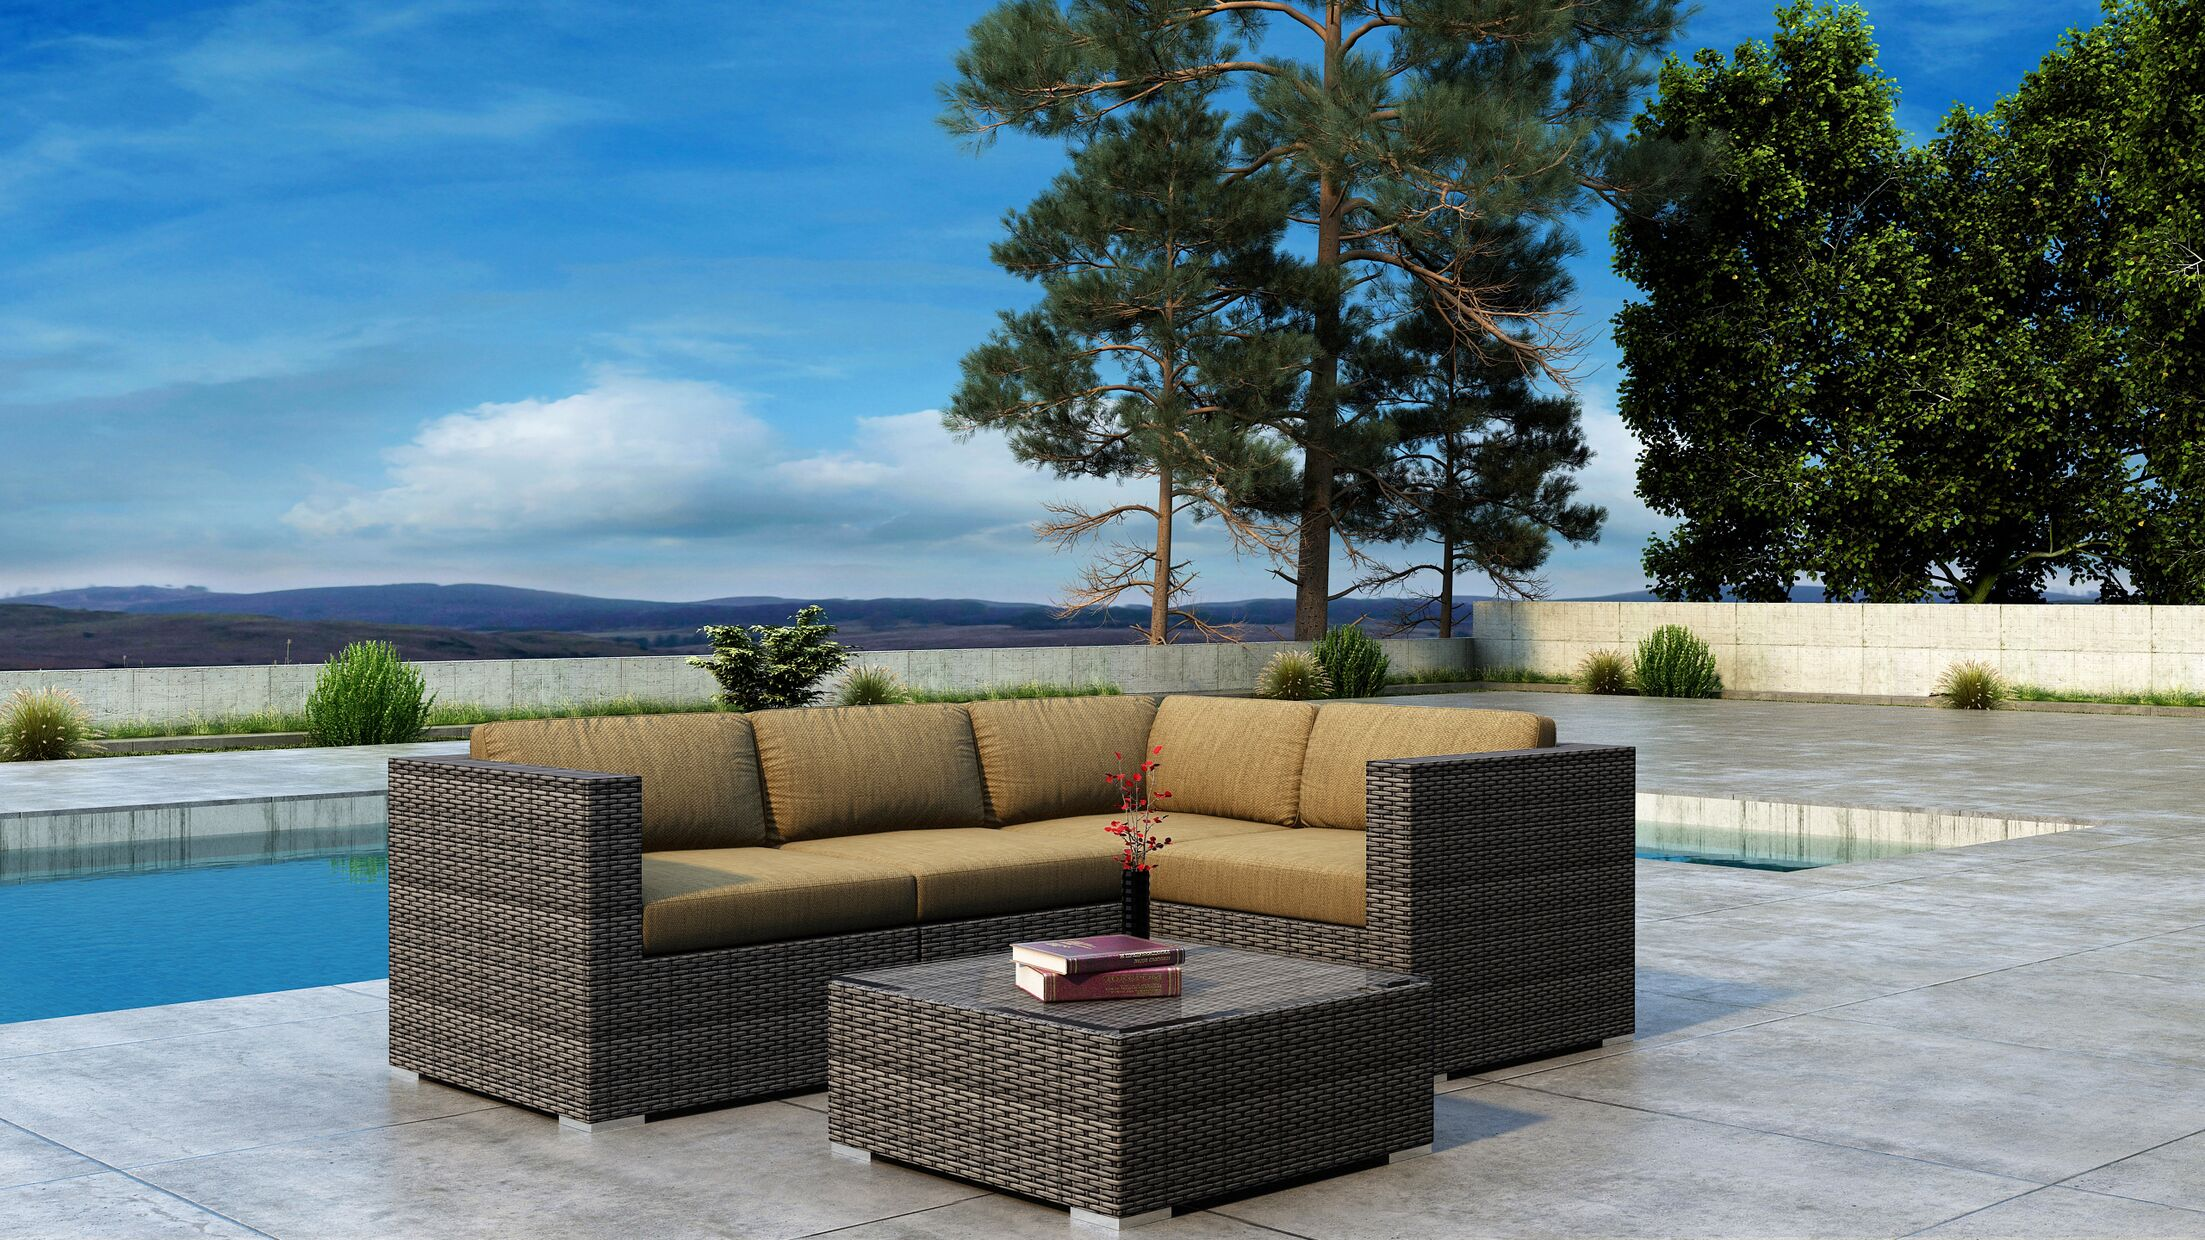 Gilleland 5 Piece Sectional Set with Sunbrella Cushion Cushion Color: Heather Beige